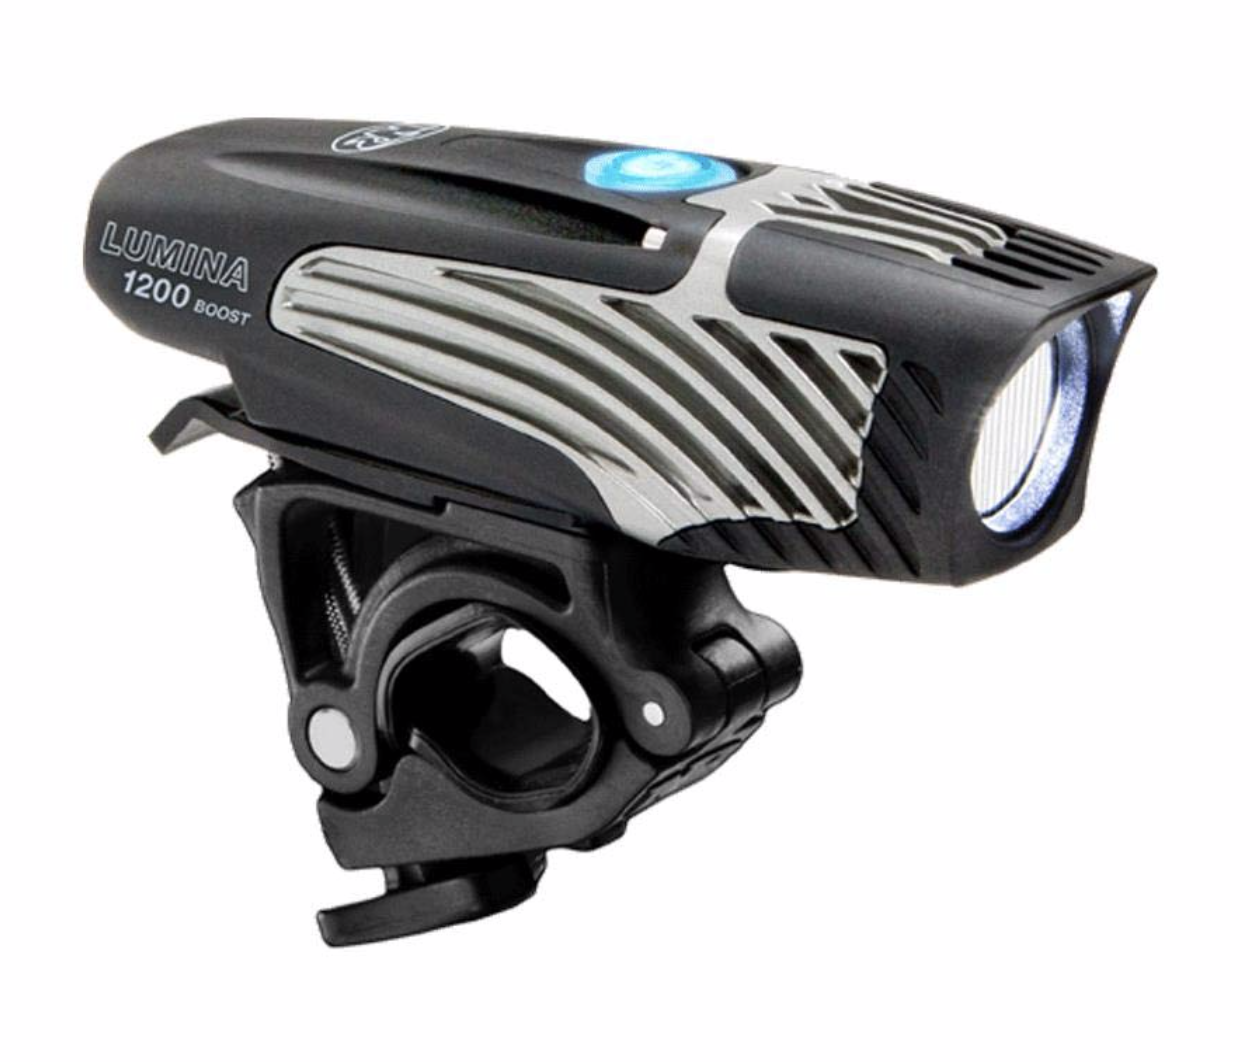 NiteRider Lumina 1200 Light  - A USB Rechargeable Cycling light with a run times of 1.5 hours on High (1200 lumens), 3 hours on Medium (350 lumens), 6 hours on Low (275 lumens) and 18 hours on Walk (75 lumens).  $95 on Amazon